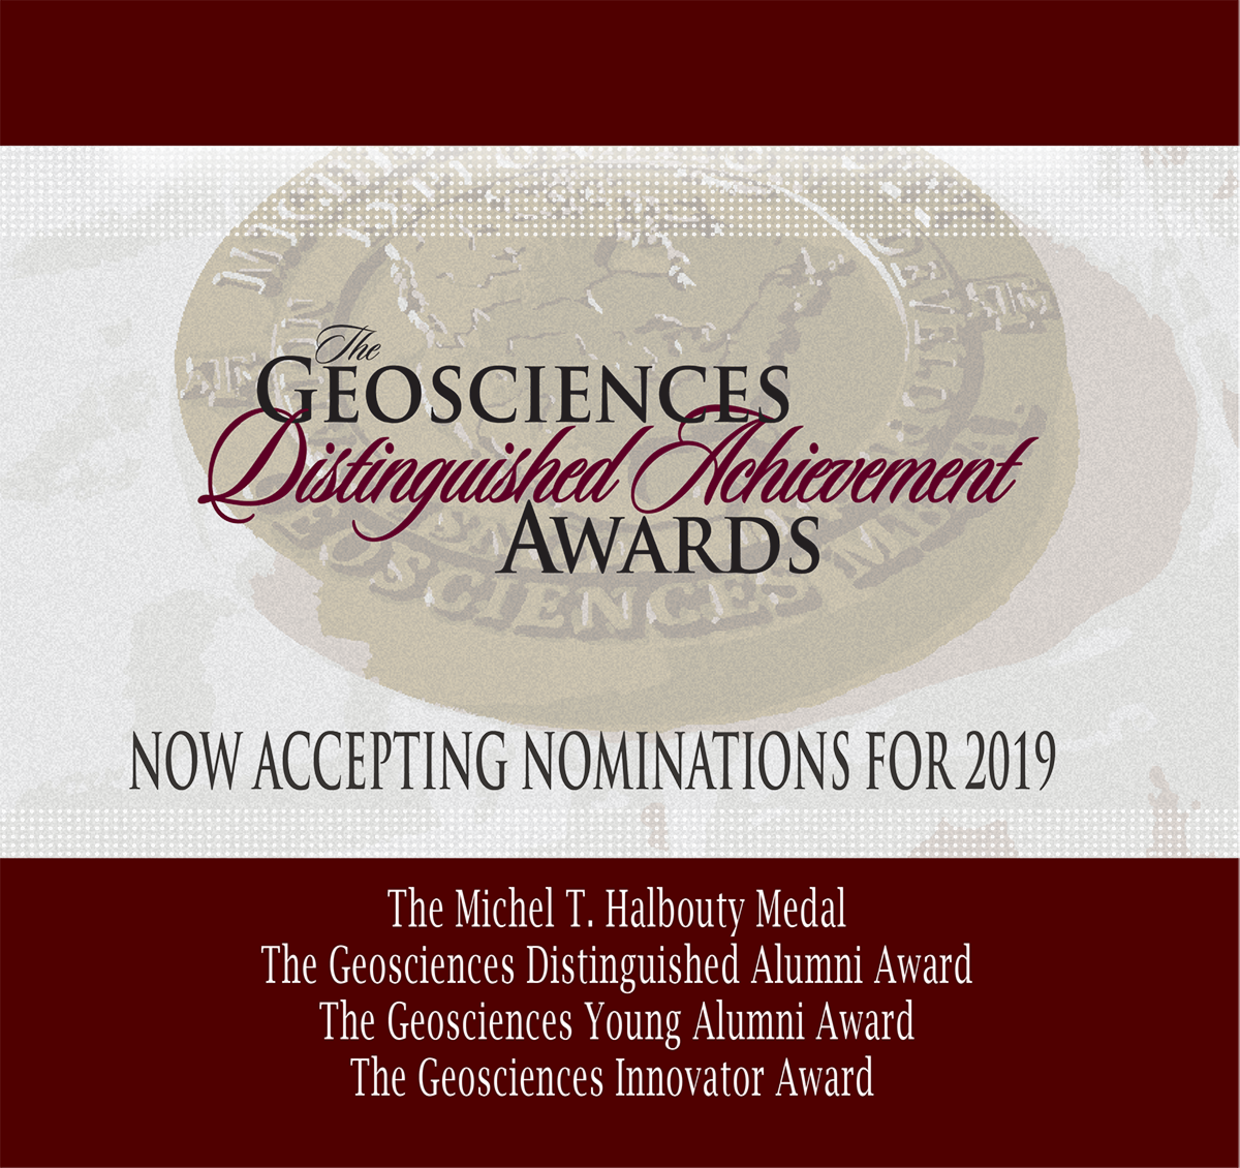 Call for nominations for 2019 Geosciences Distinguished Achievement Awards